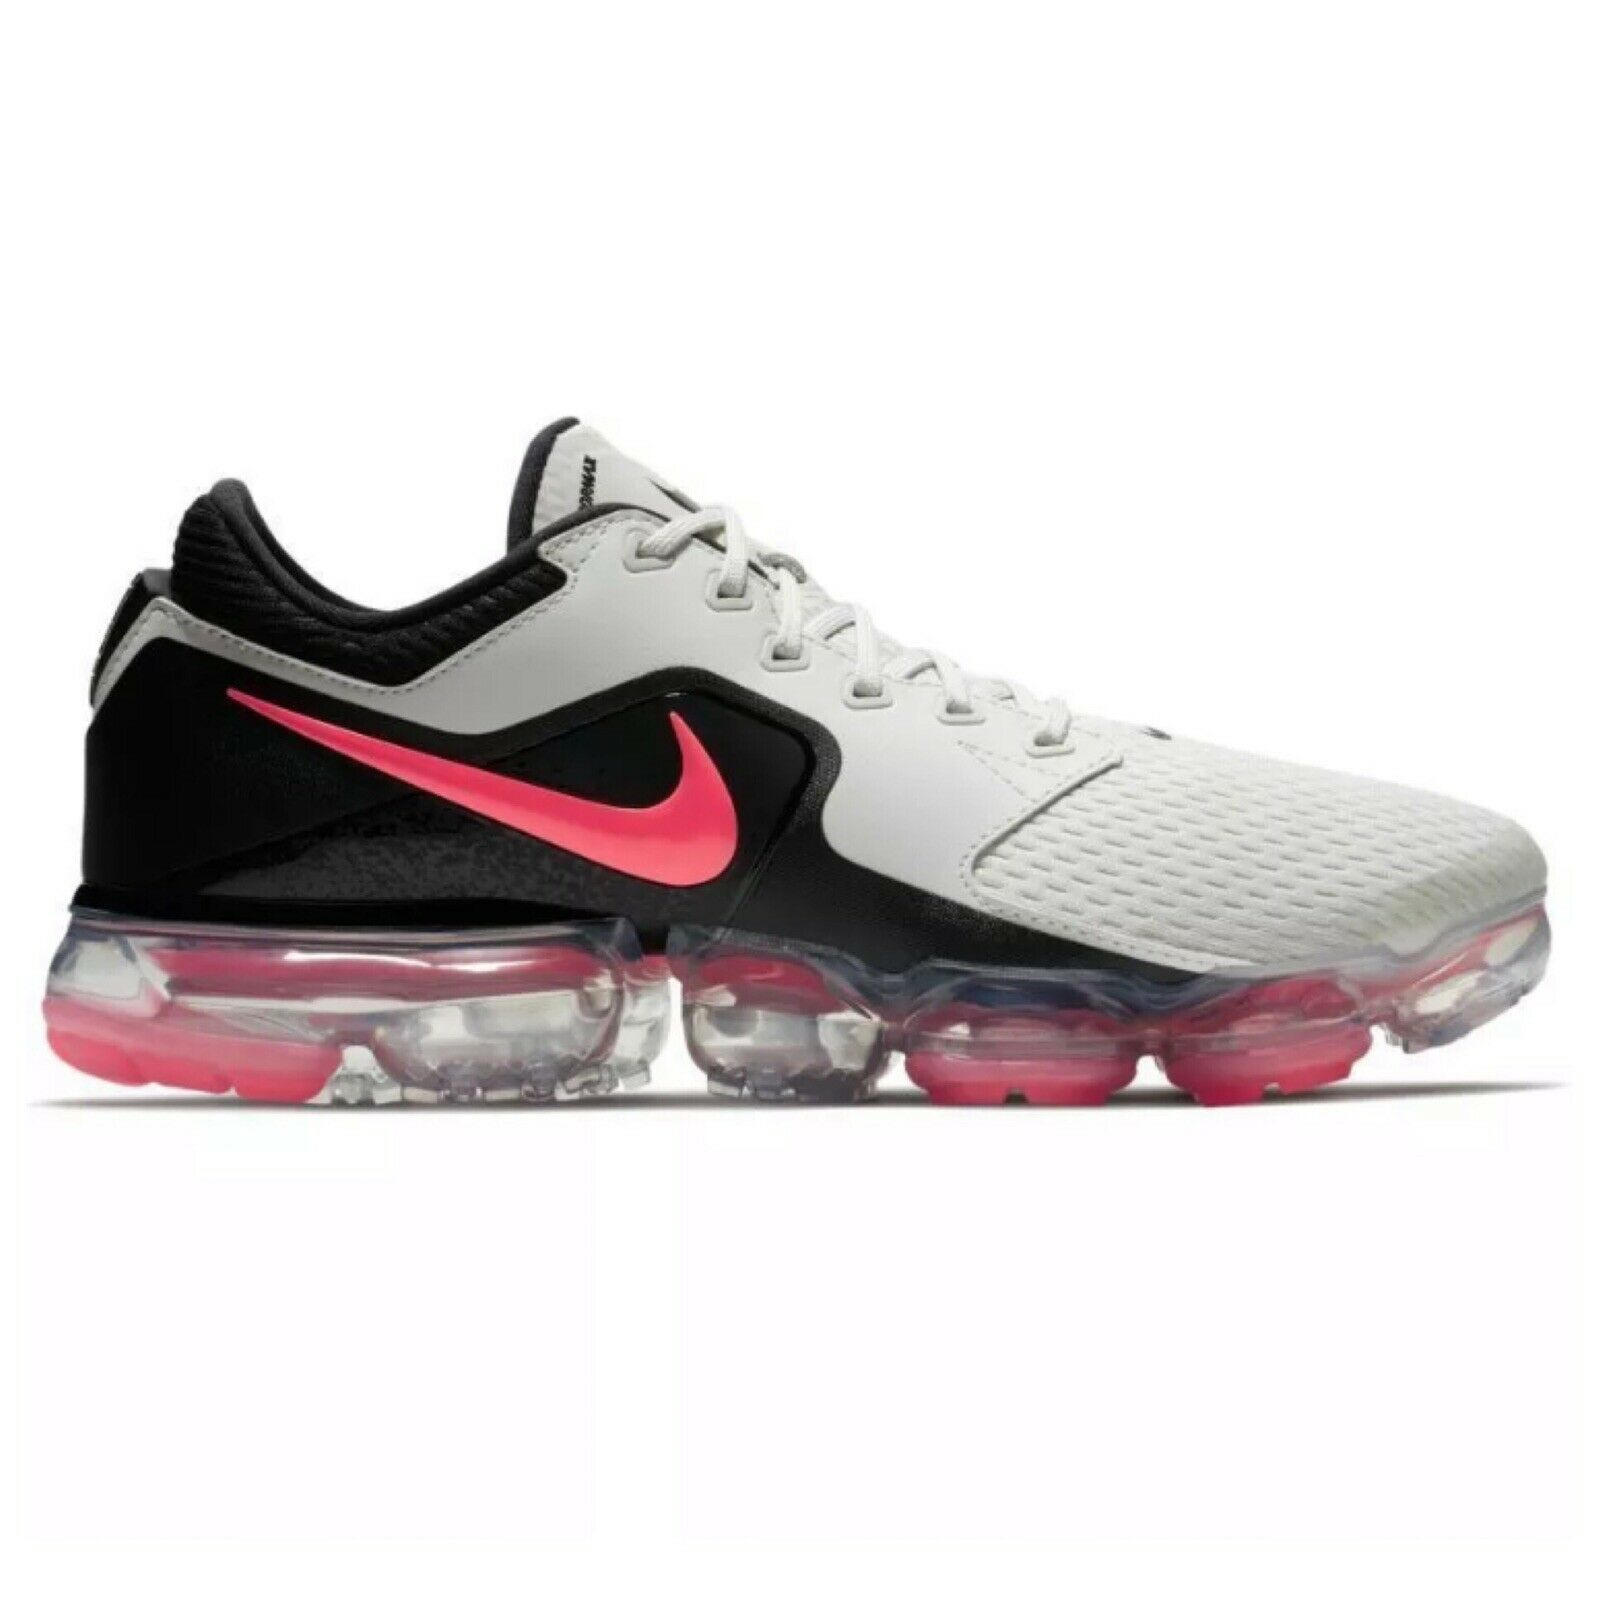 Nike AIR VAPORMAX Running shoes  Hot Punch  AH9046 001 Men's Size 9.5